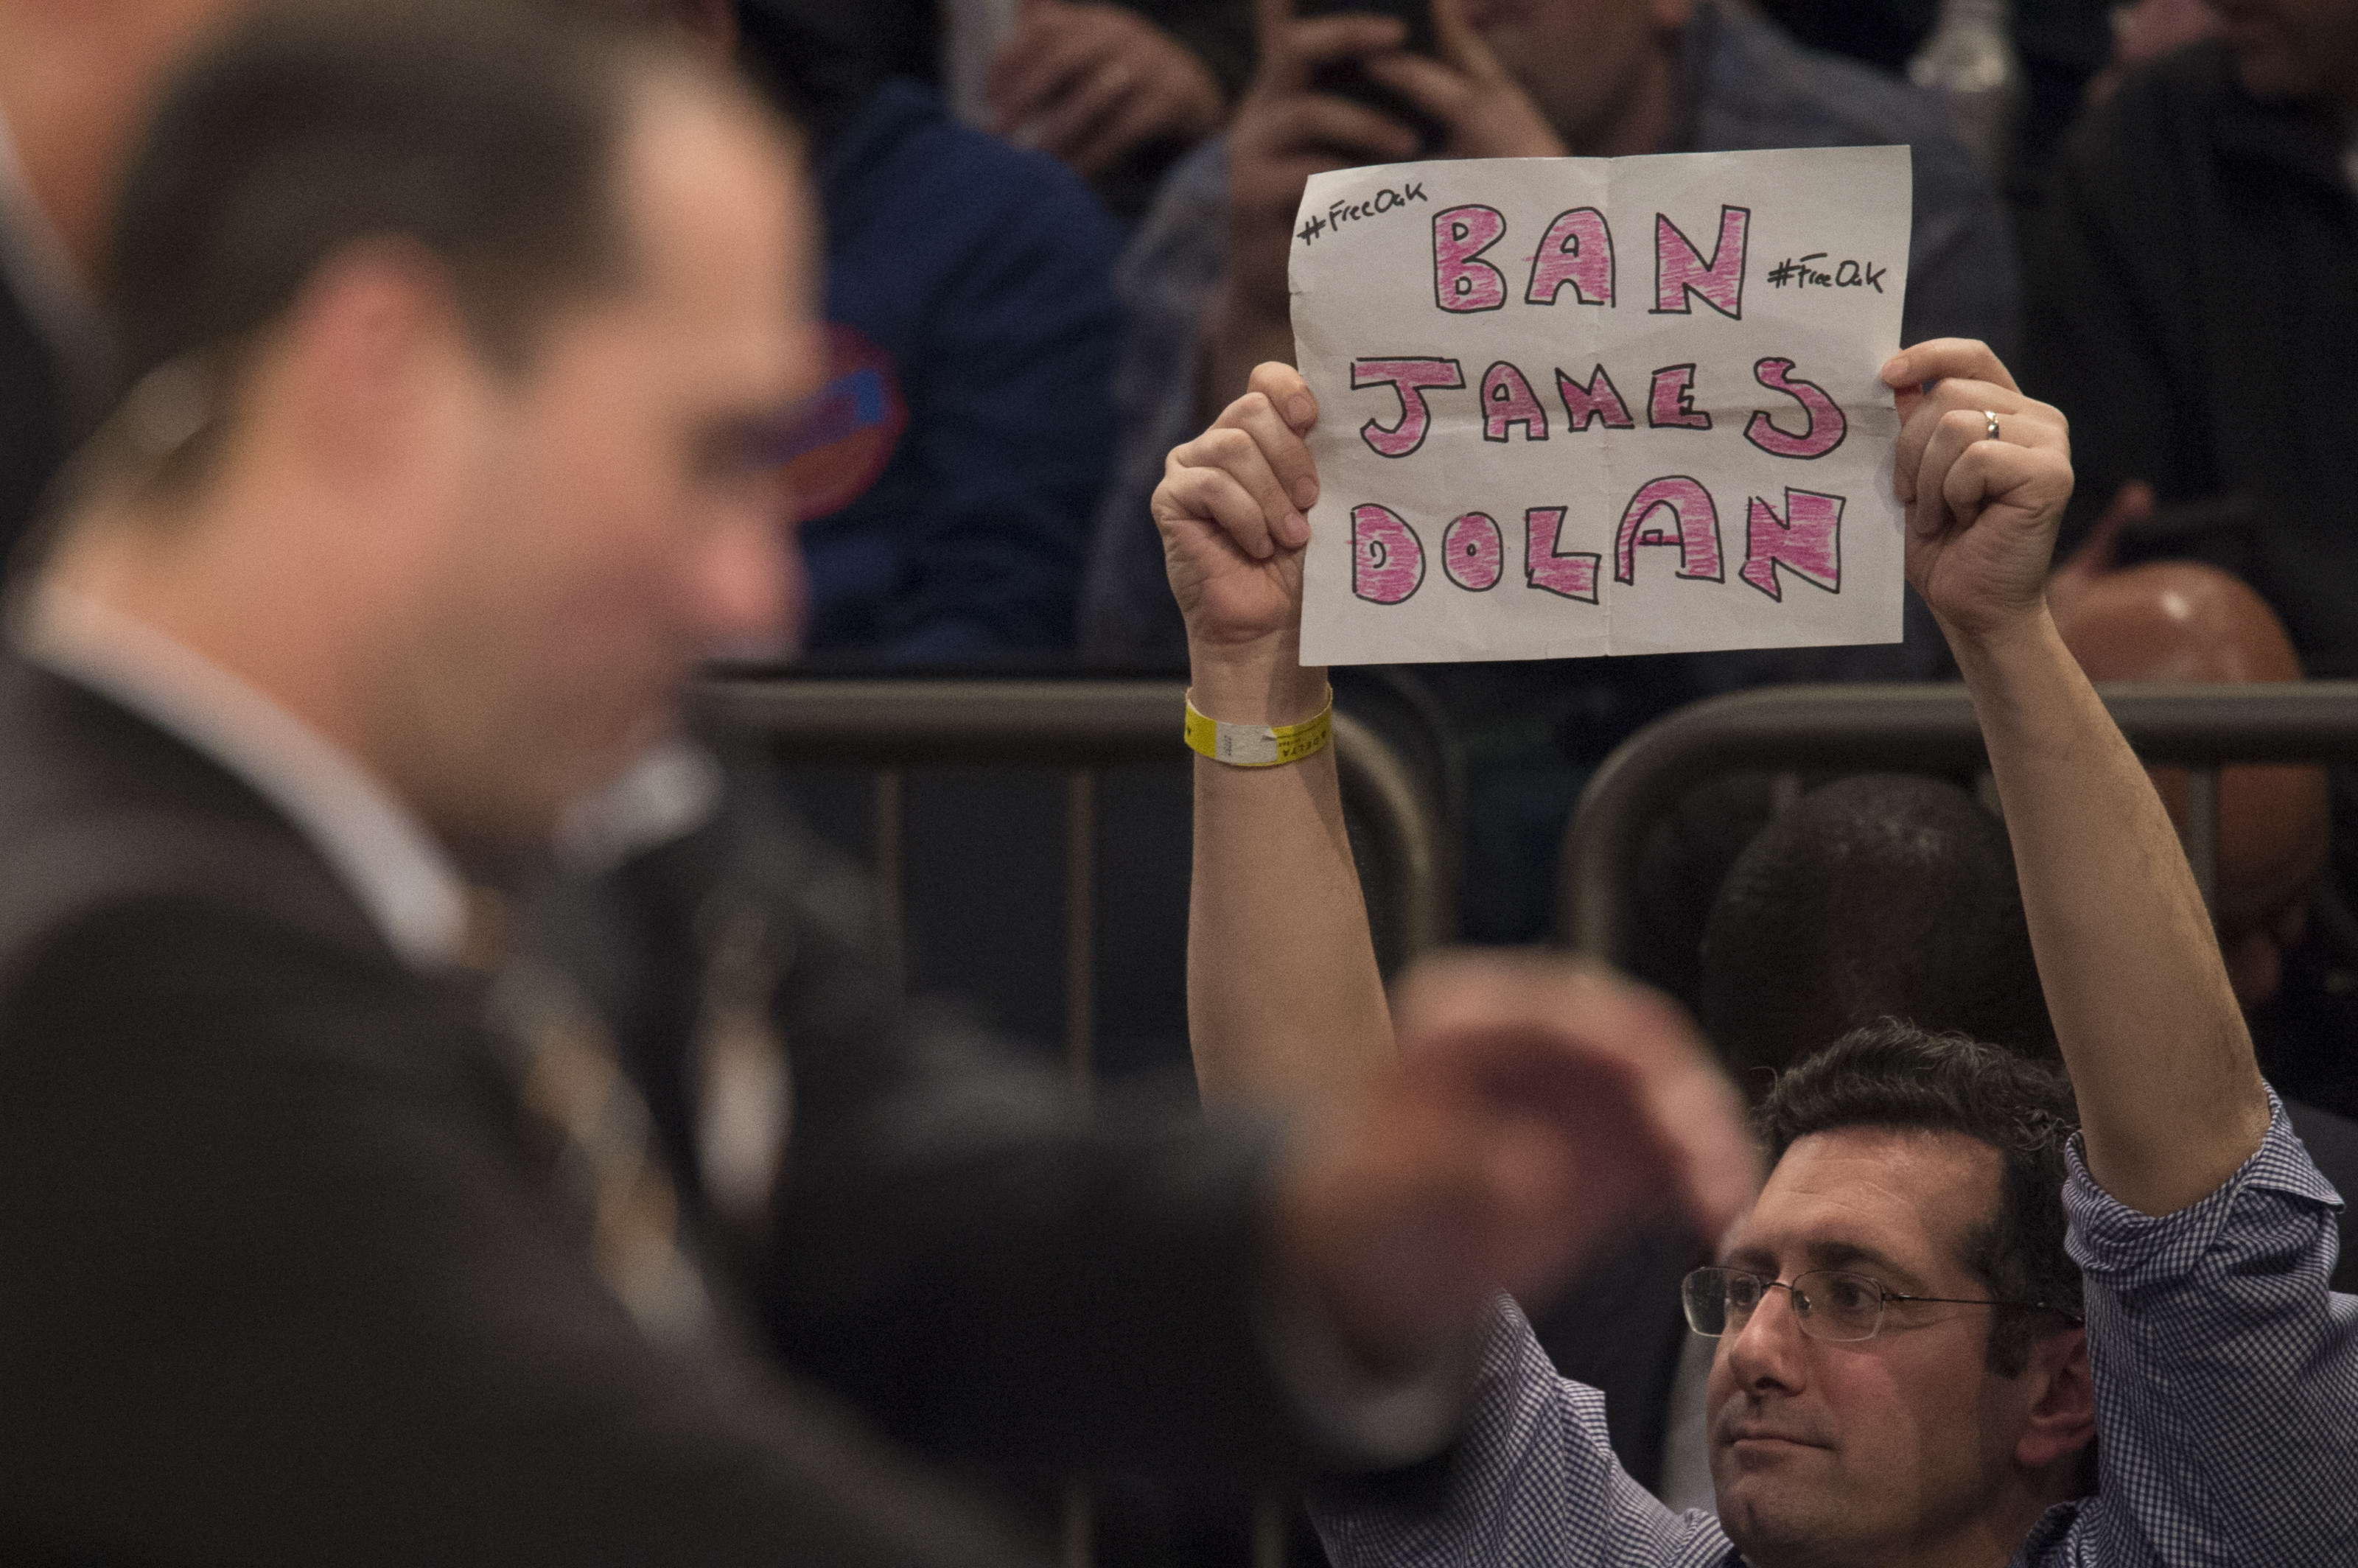 A fan expresses his displeasure with James Dolan at Friday's game Friday hours after the Knicks' owner banned Charles Oakley from Madison Square Garden. (New York Times)